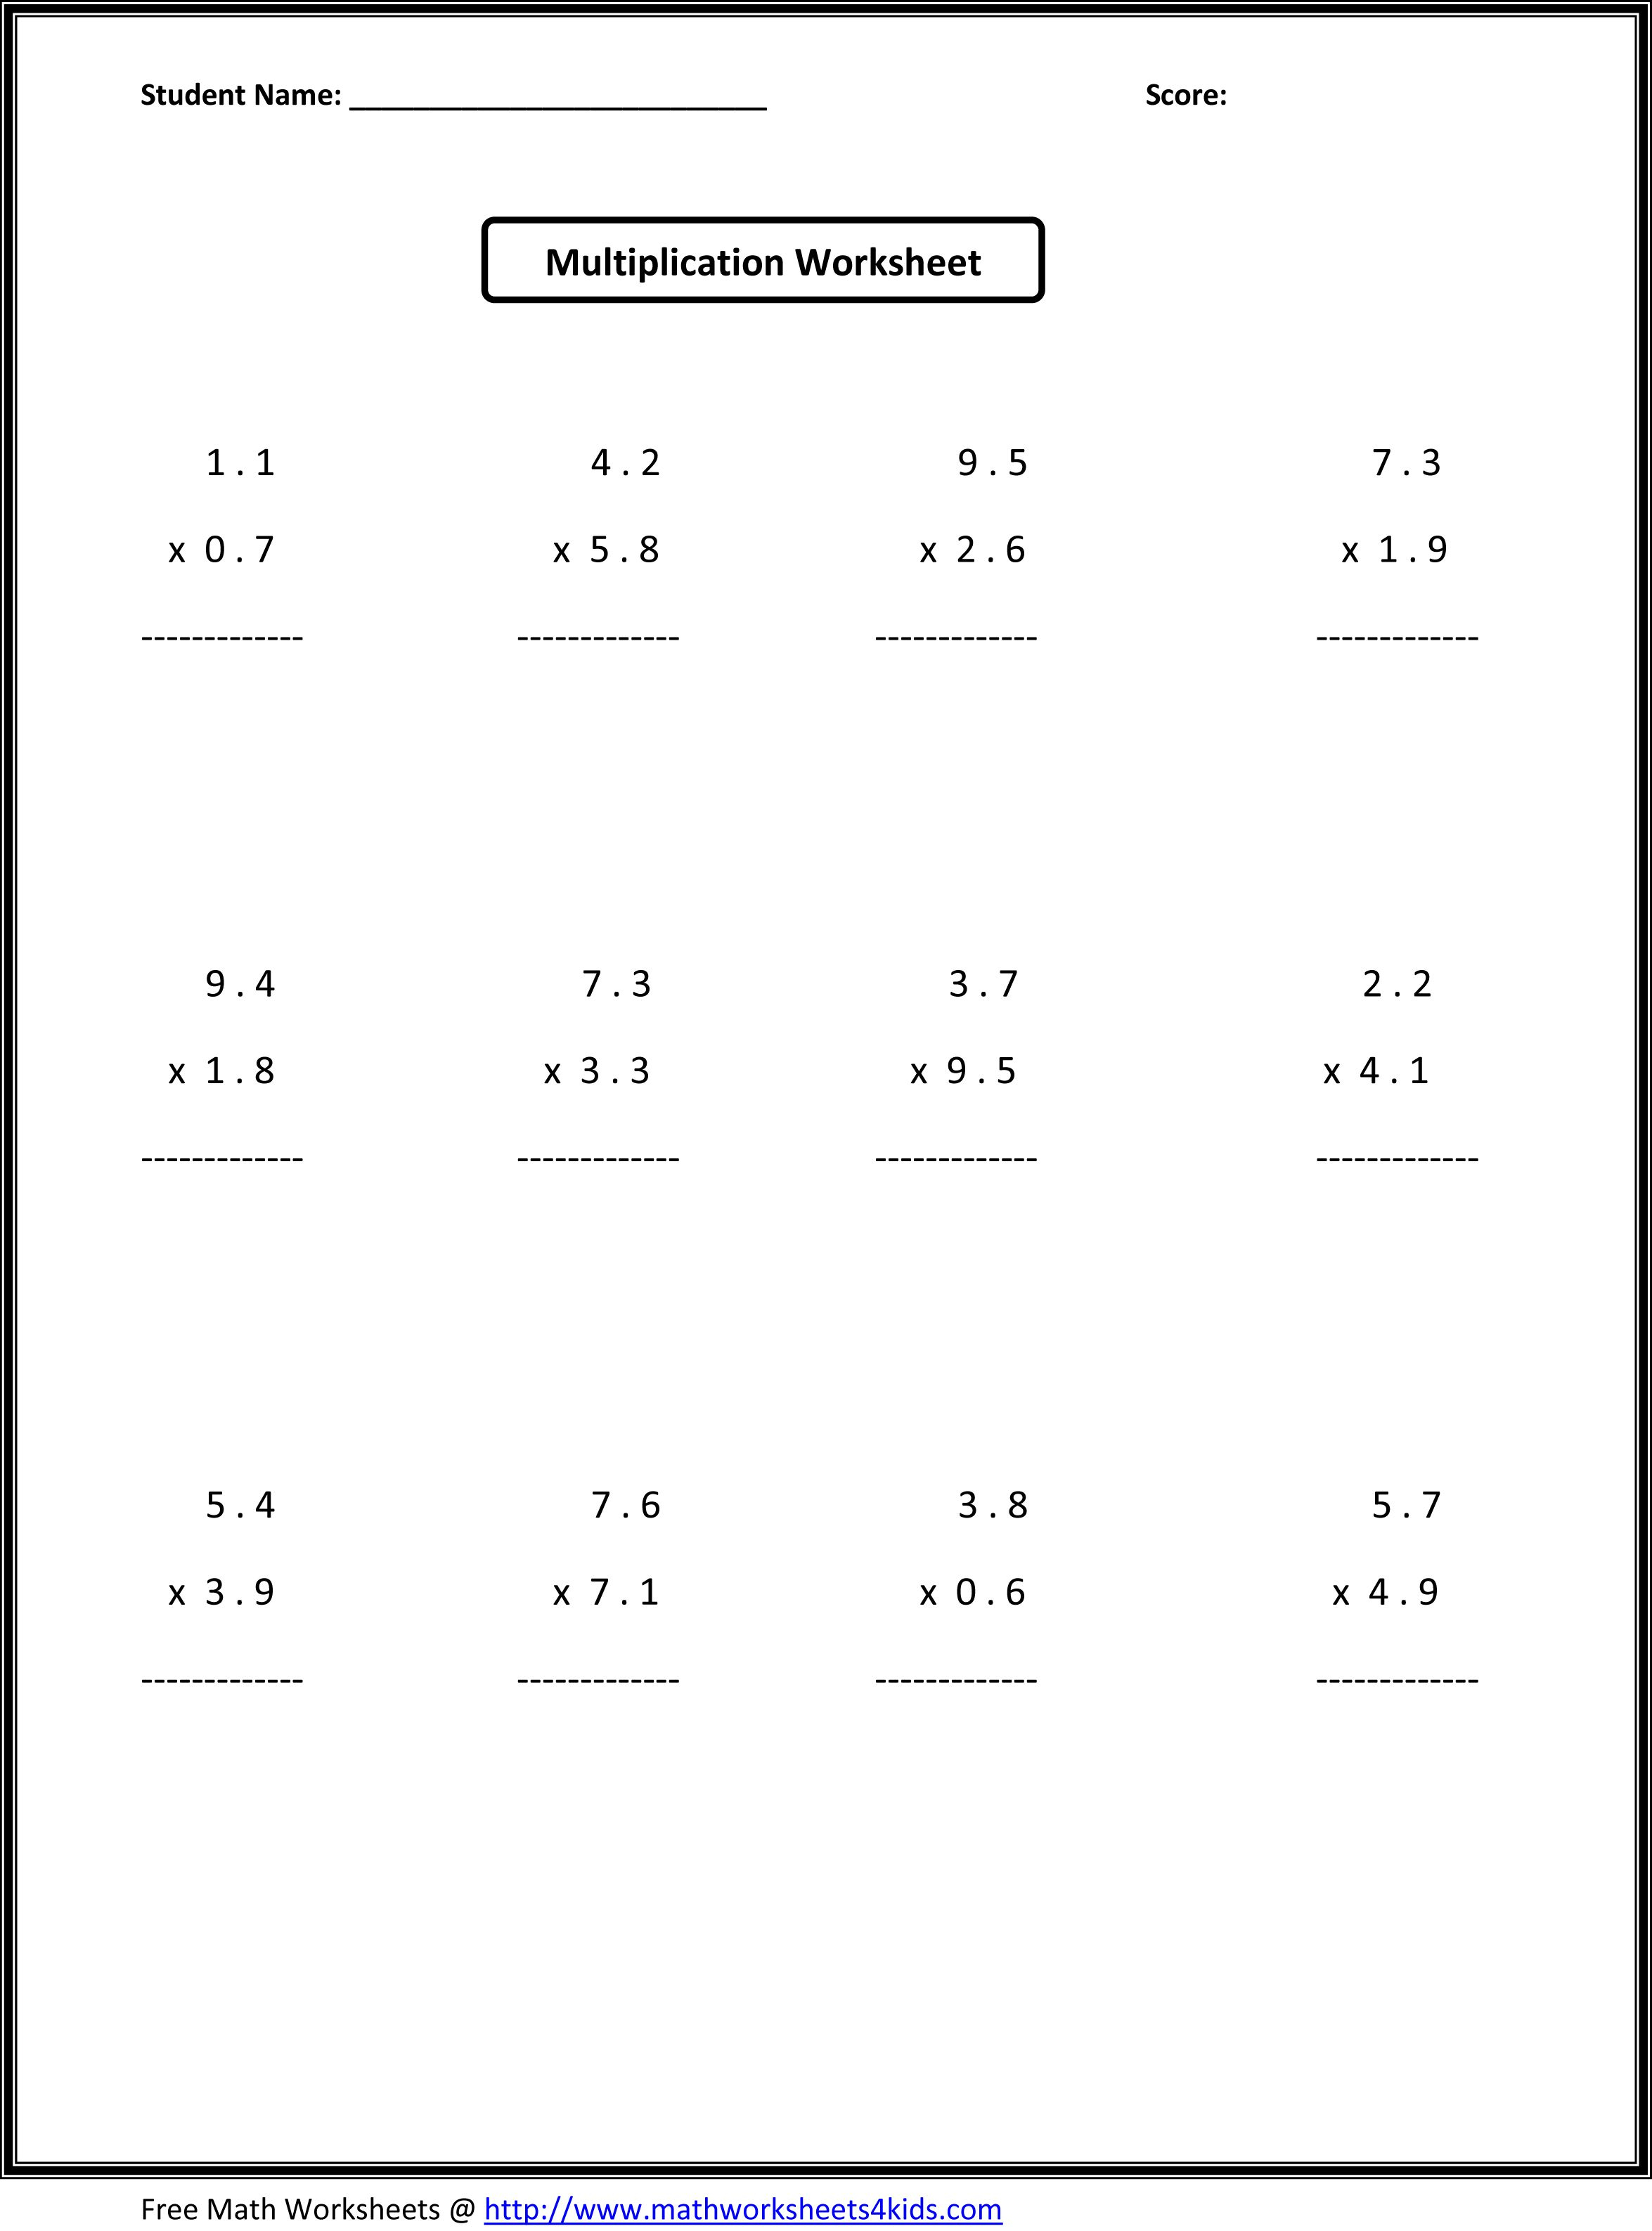 7Th Grade Math Worksheets | Value Worksheets Absolute Value | 7Th Grade Math Worksheets Printable